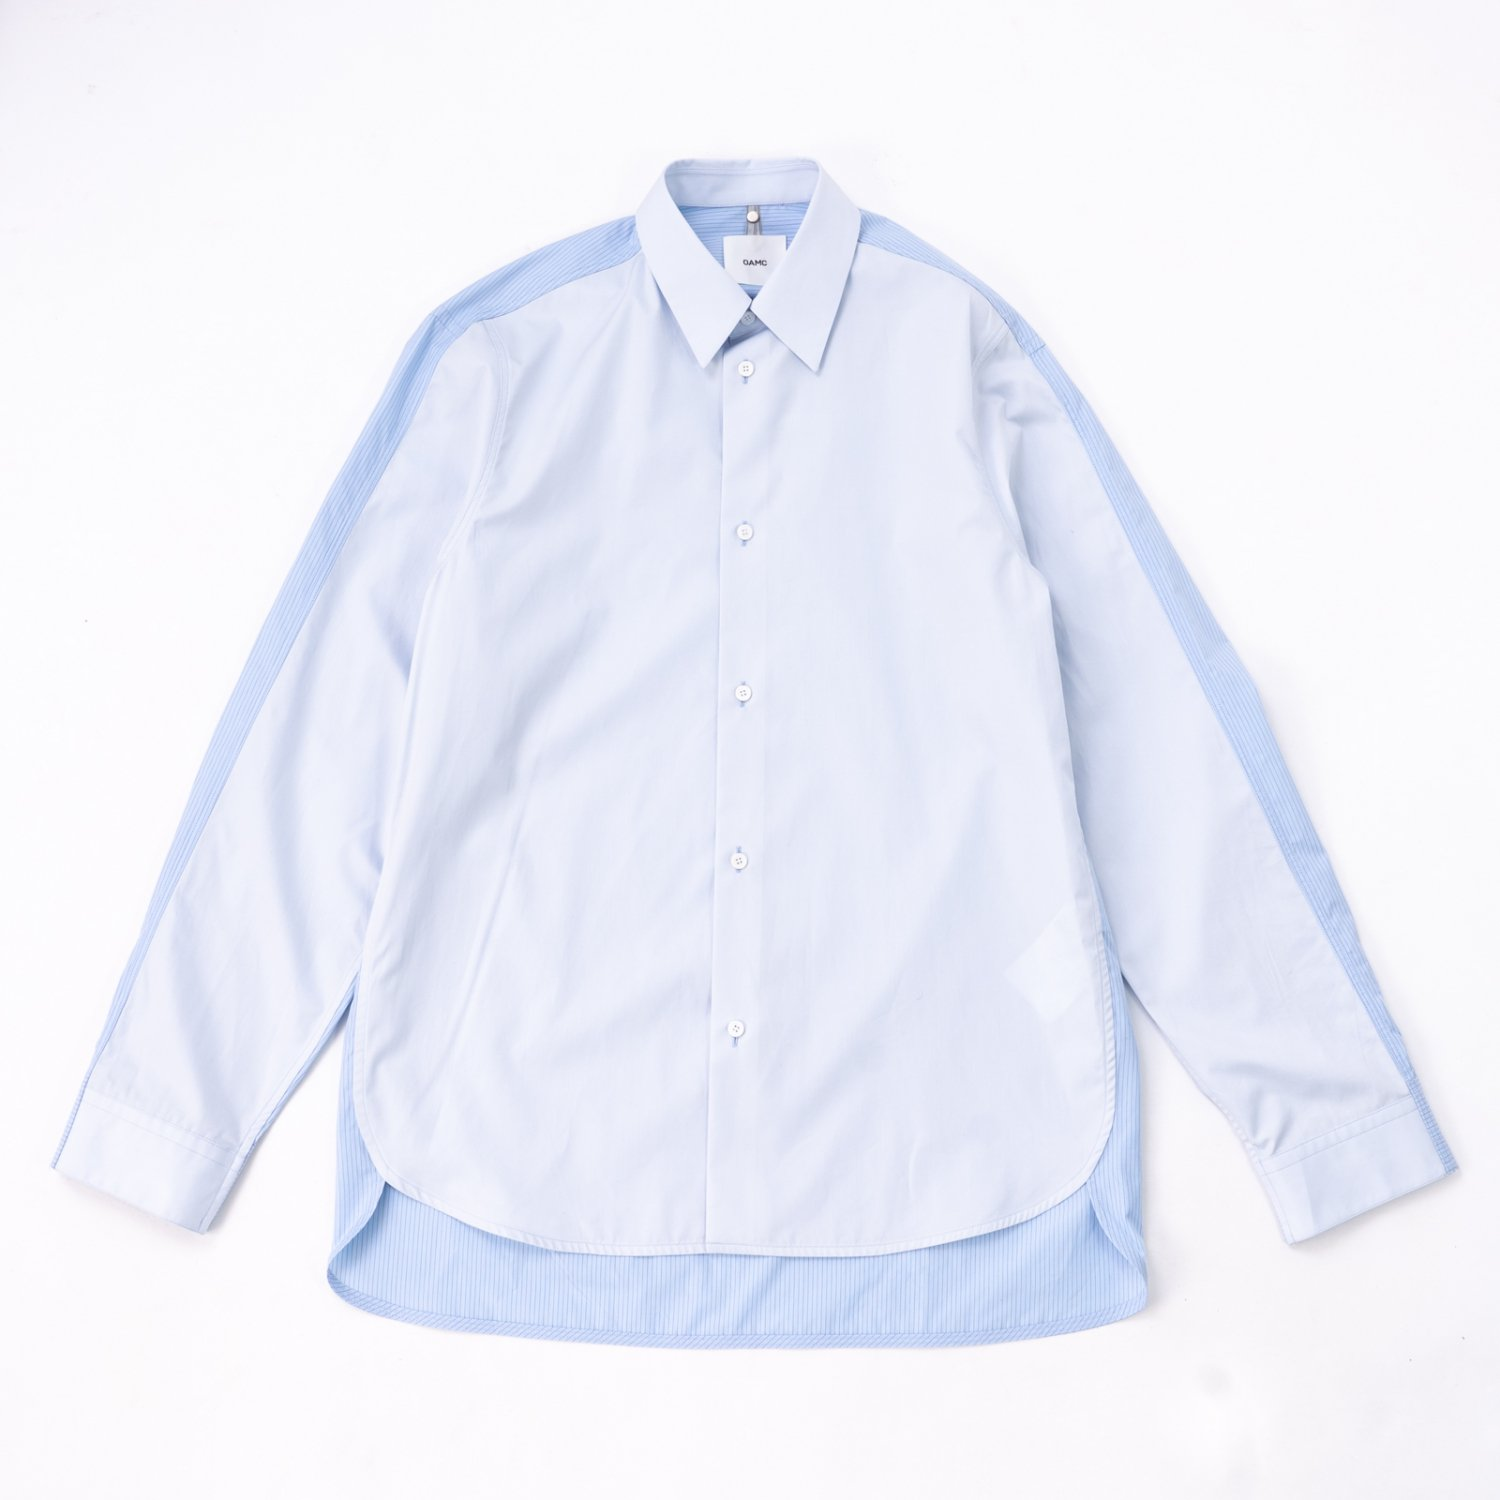 OAMC * COLLAGE SHIRT * Oxford Blue